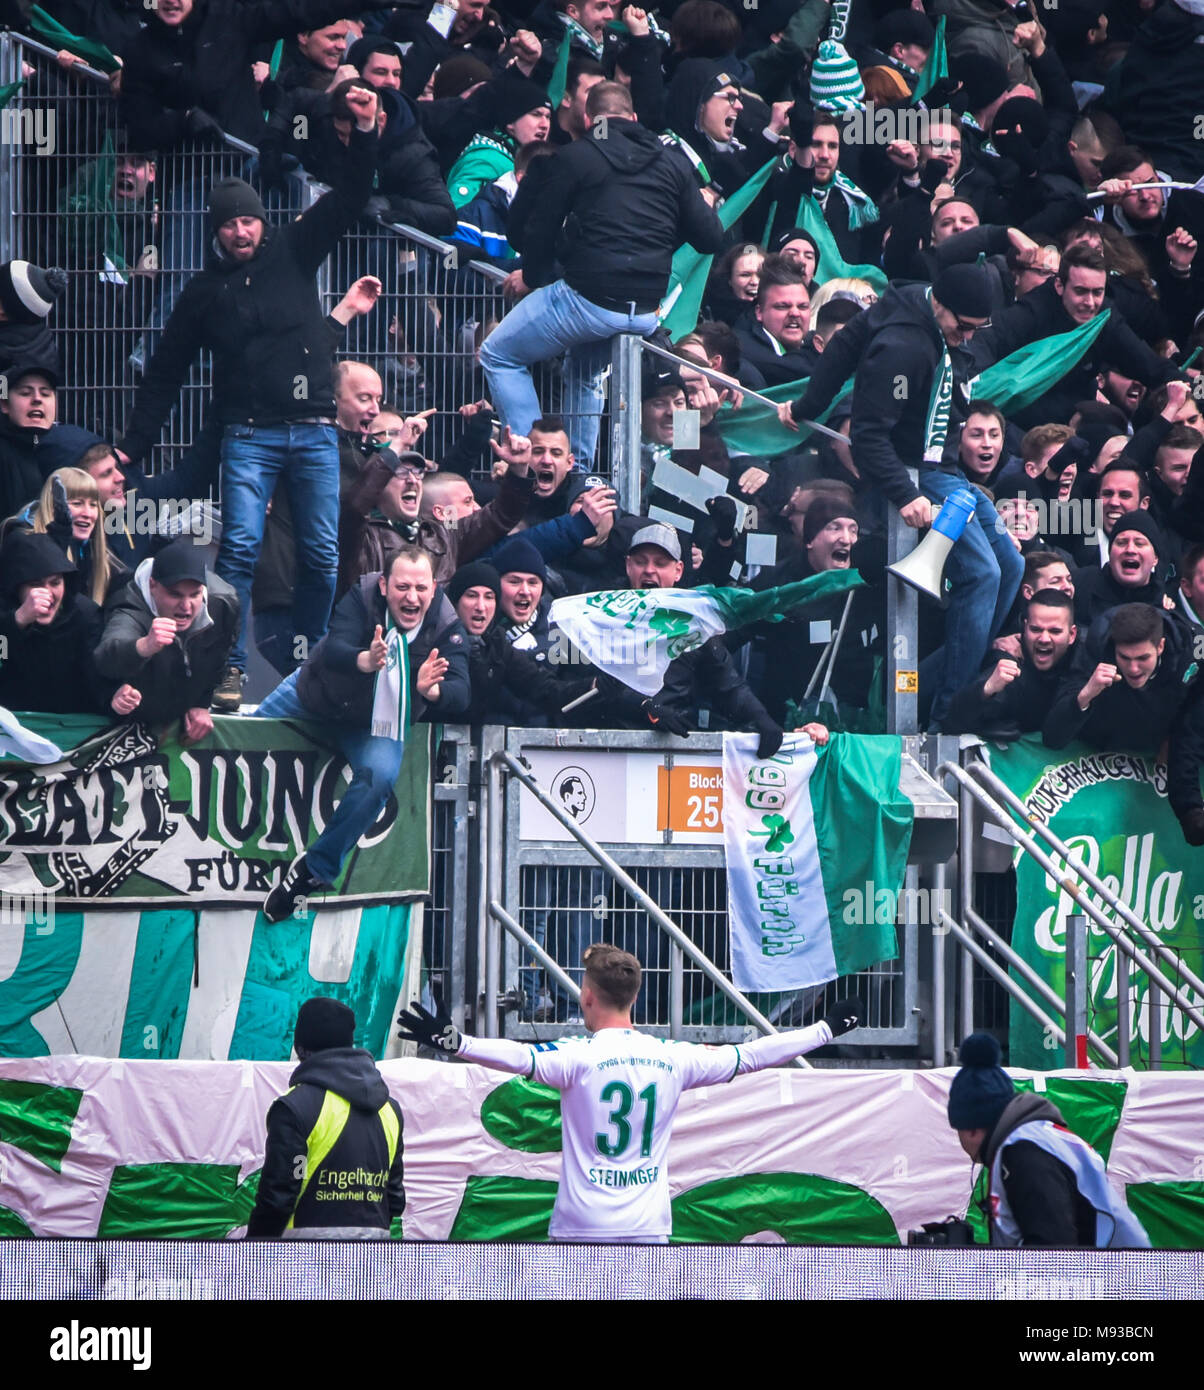 Germany, Nuernberg, Max-Morlock-Stadion, 03 March 2018 - 2.Bundesliga - 1.FC Nürnberg vs. SpVgg Greuther Fürth - 264th Franken Derby! - Stock Image